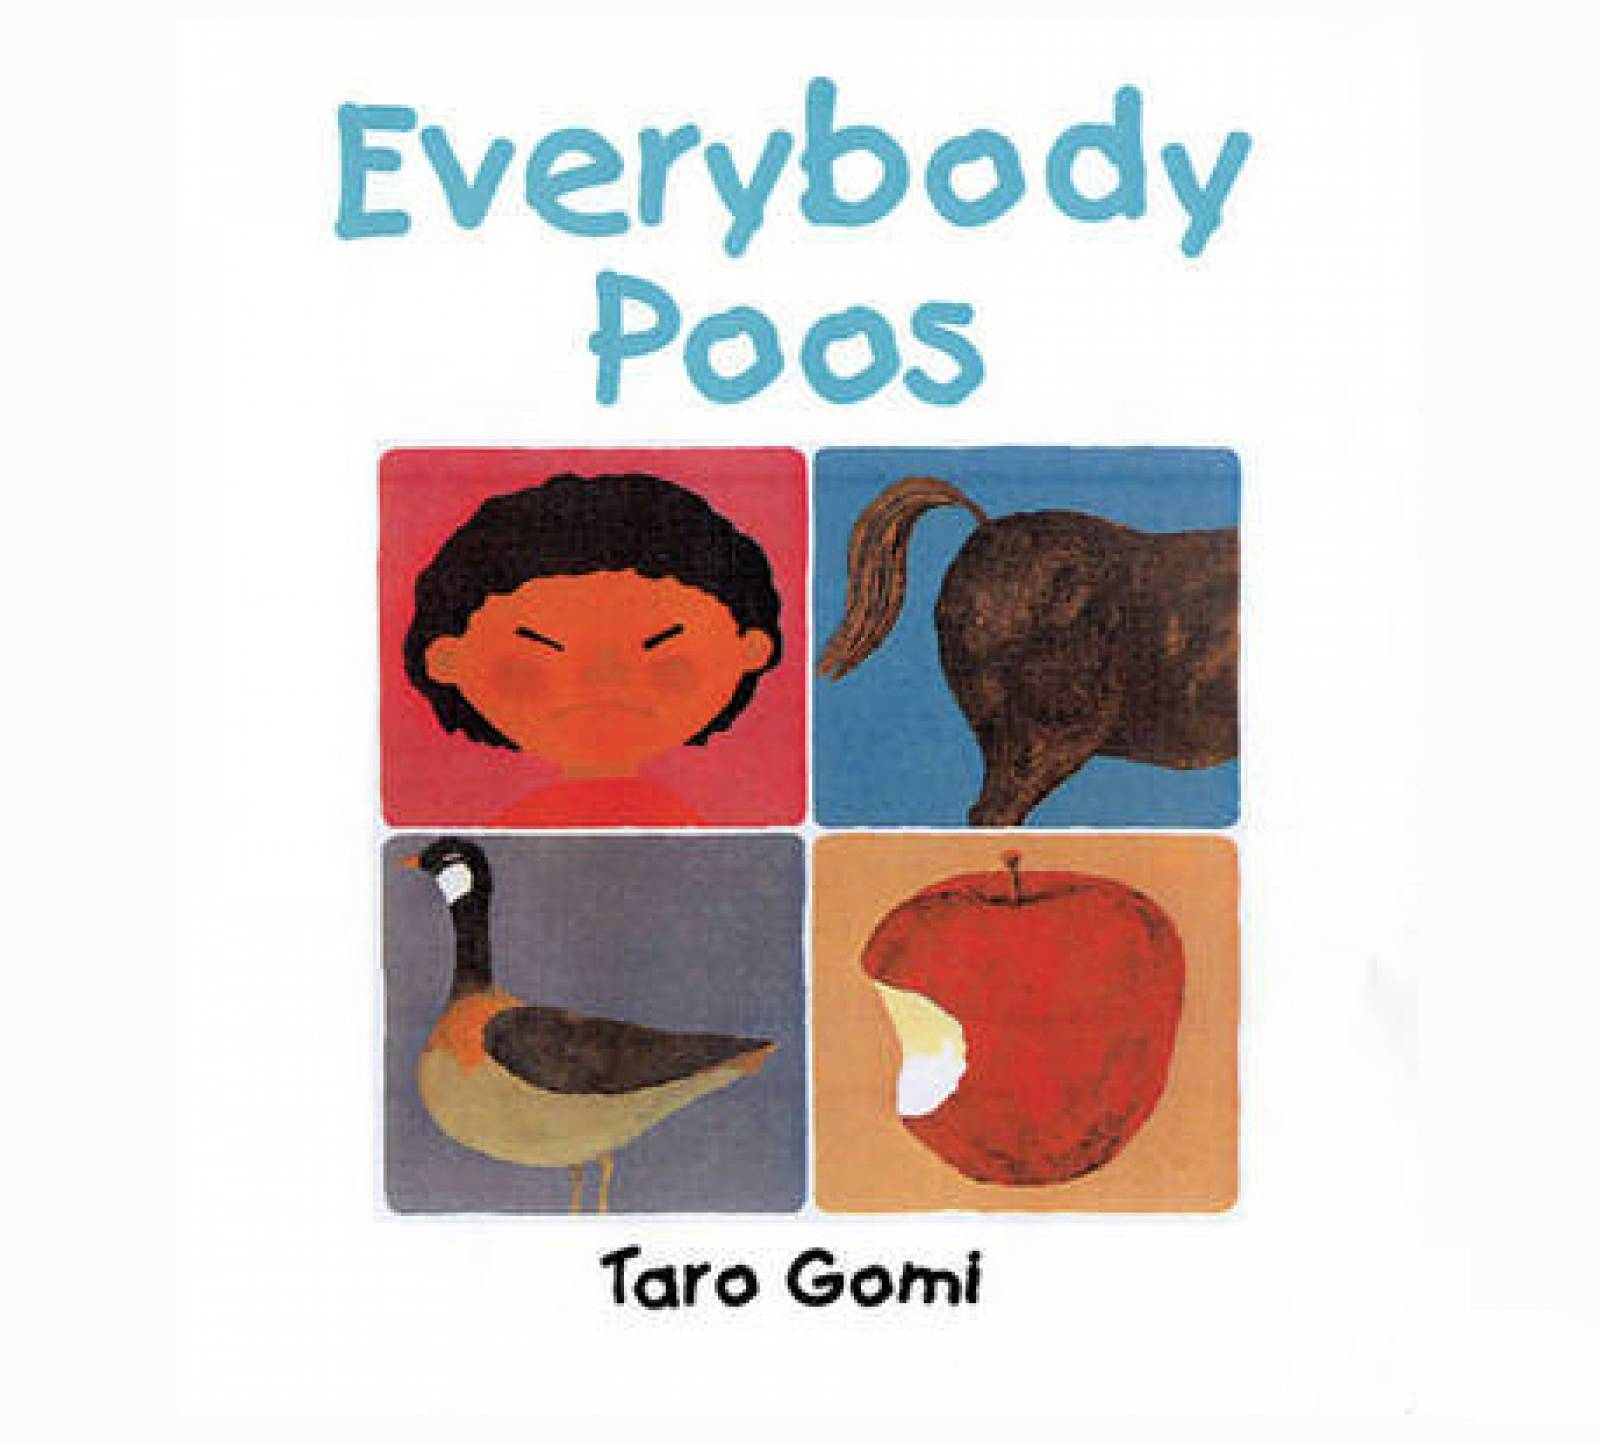 Everybody Poos Book By Taro Gomi (mini edition) thumbnails